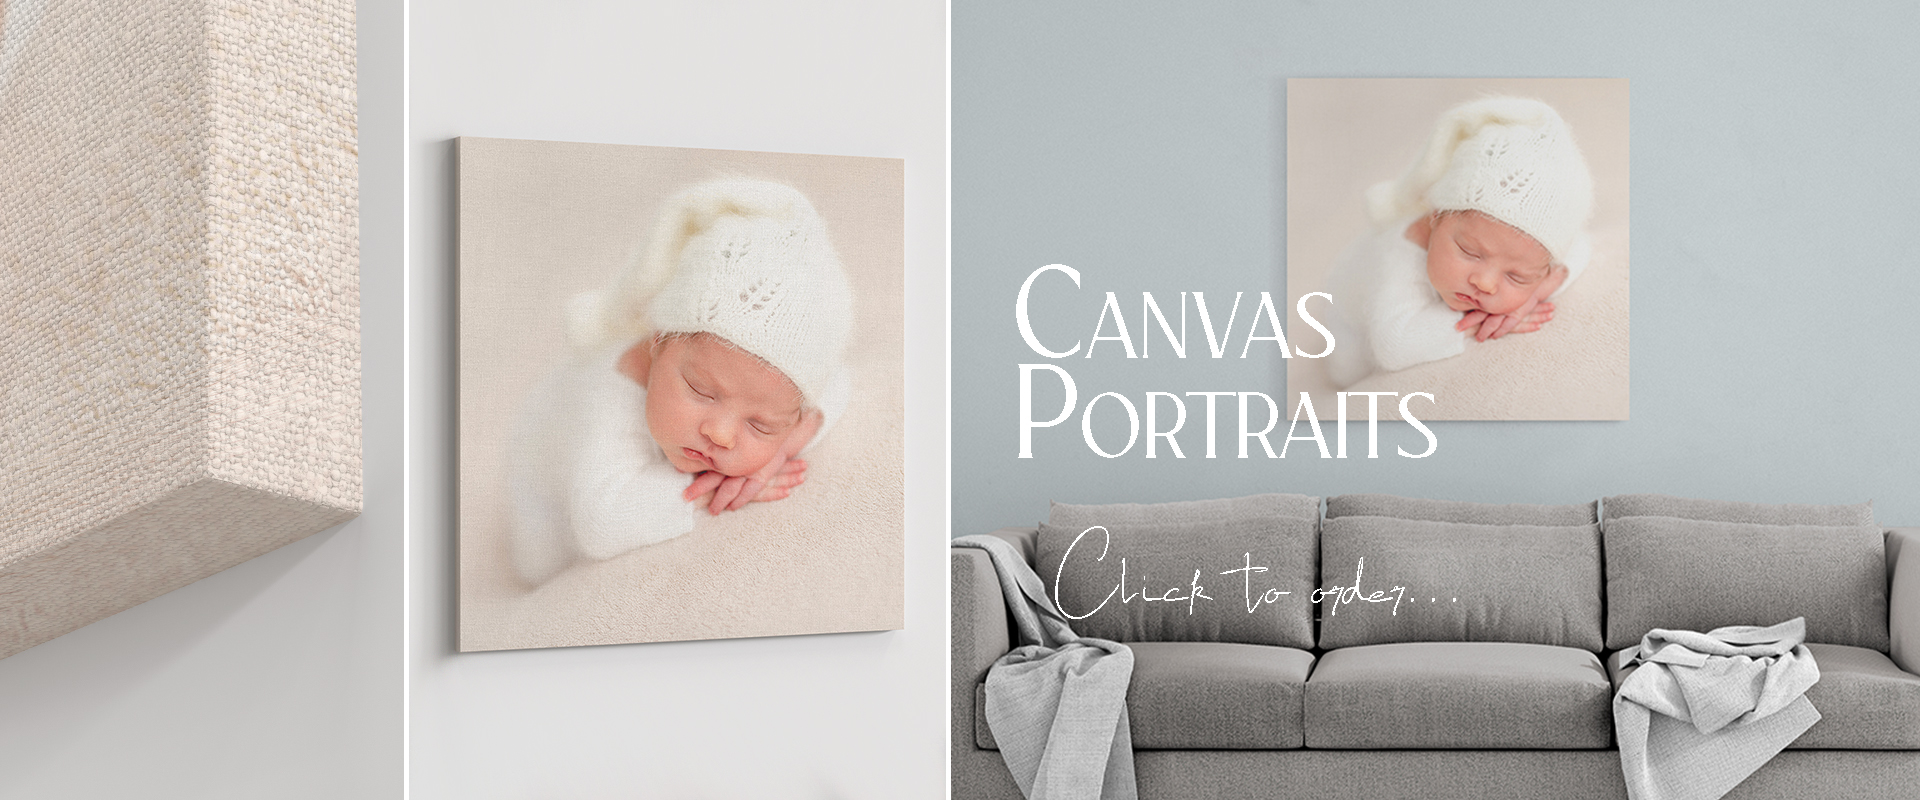 Canvas portraits hand made canvas family canvas portrait cork ireland canvas in ballincollig cork canvas printing canvas manufacturing